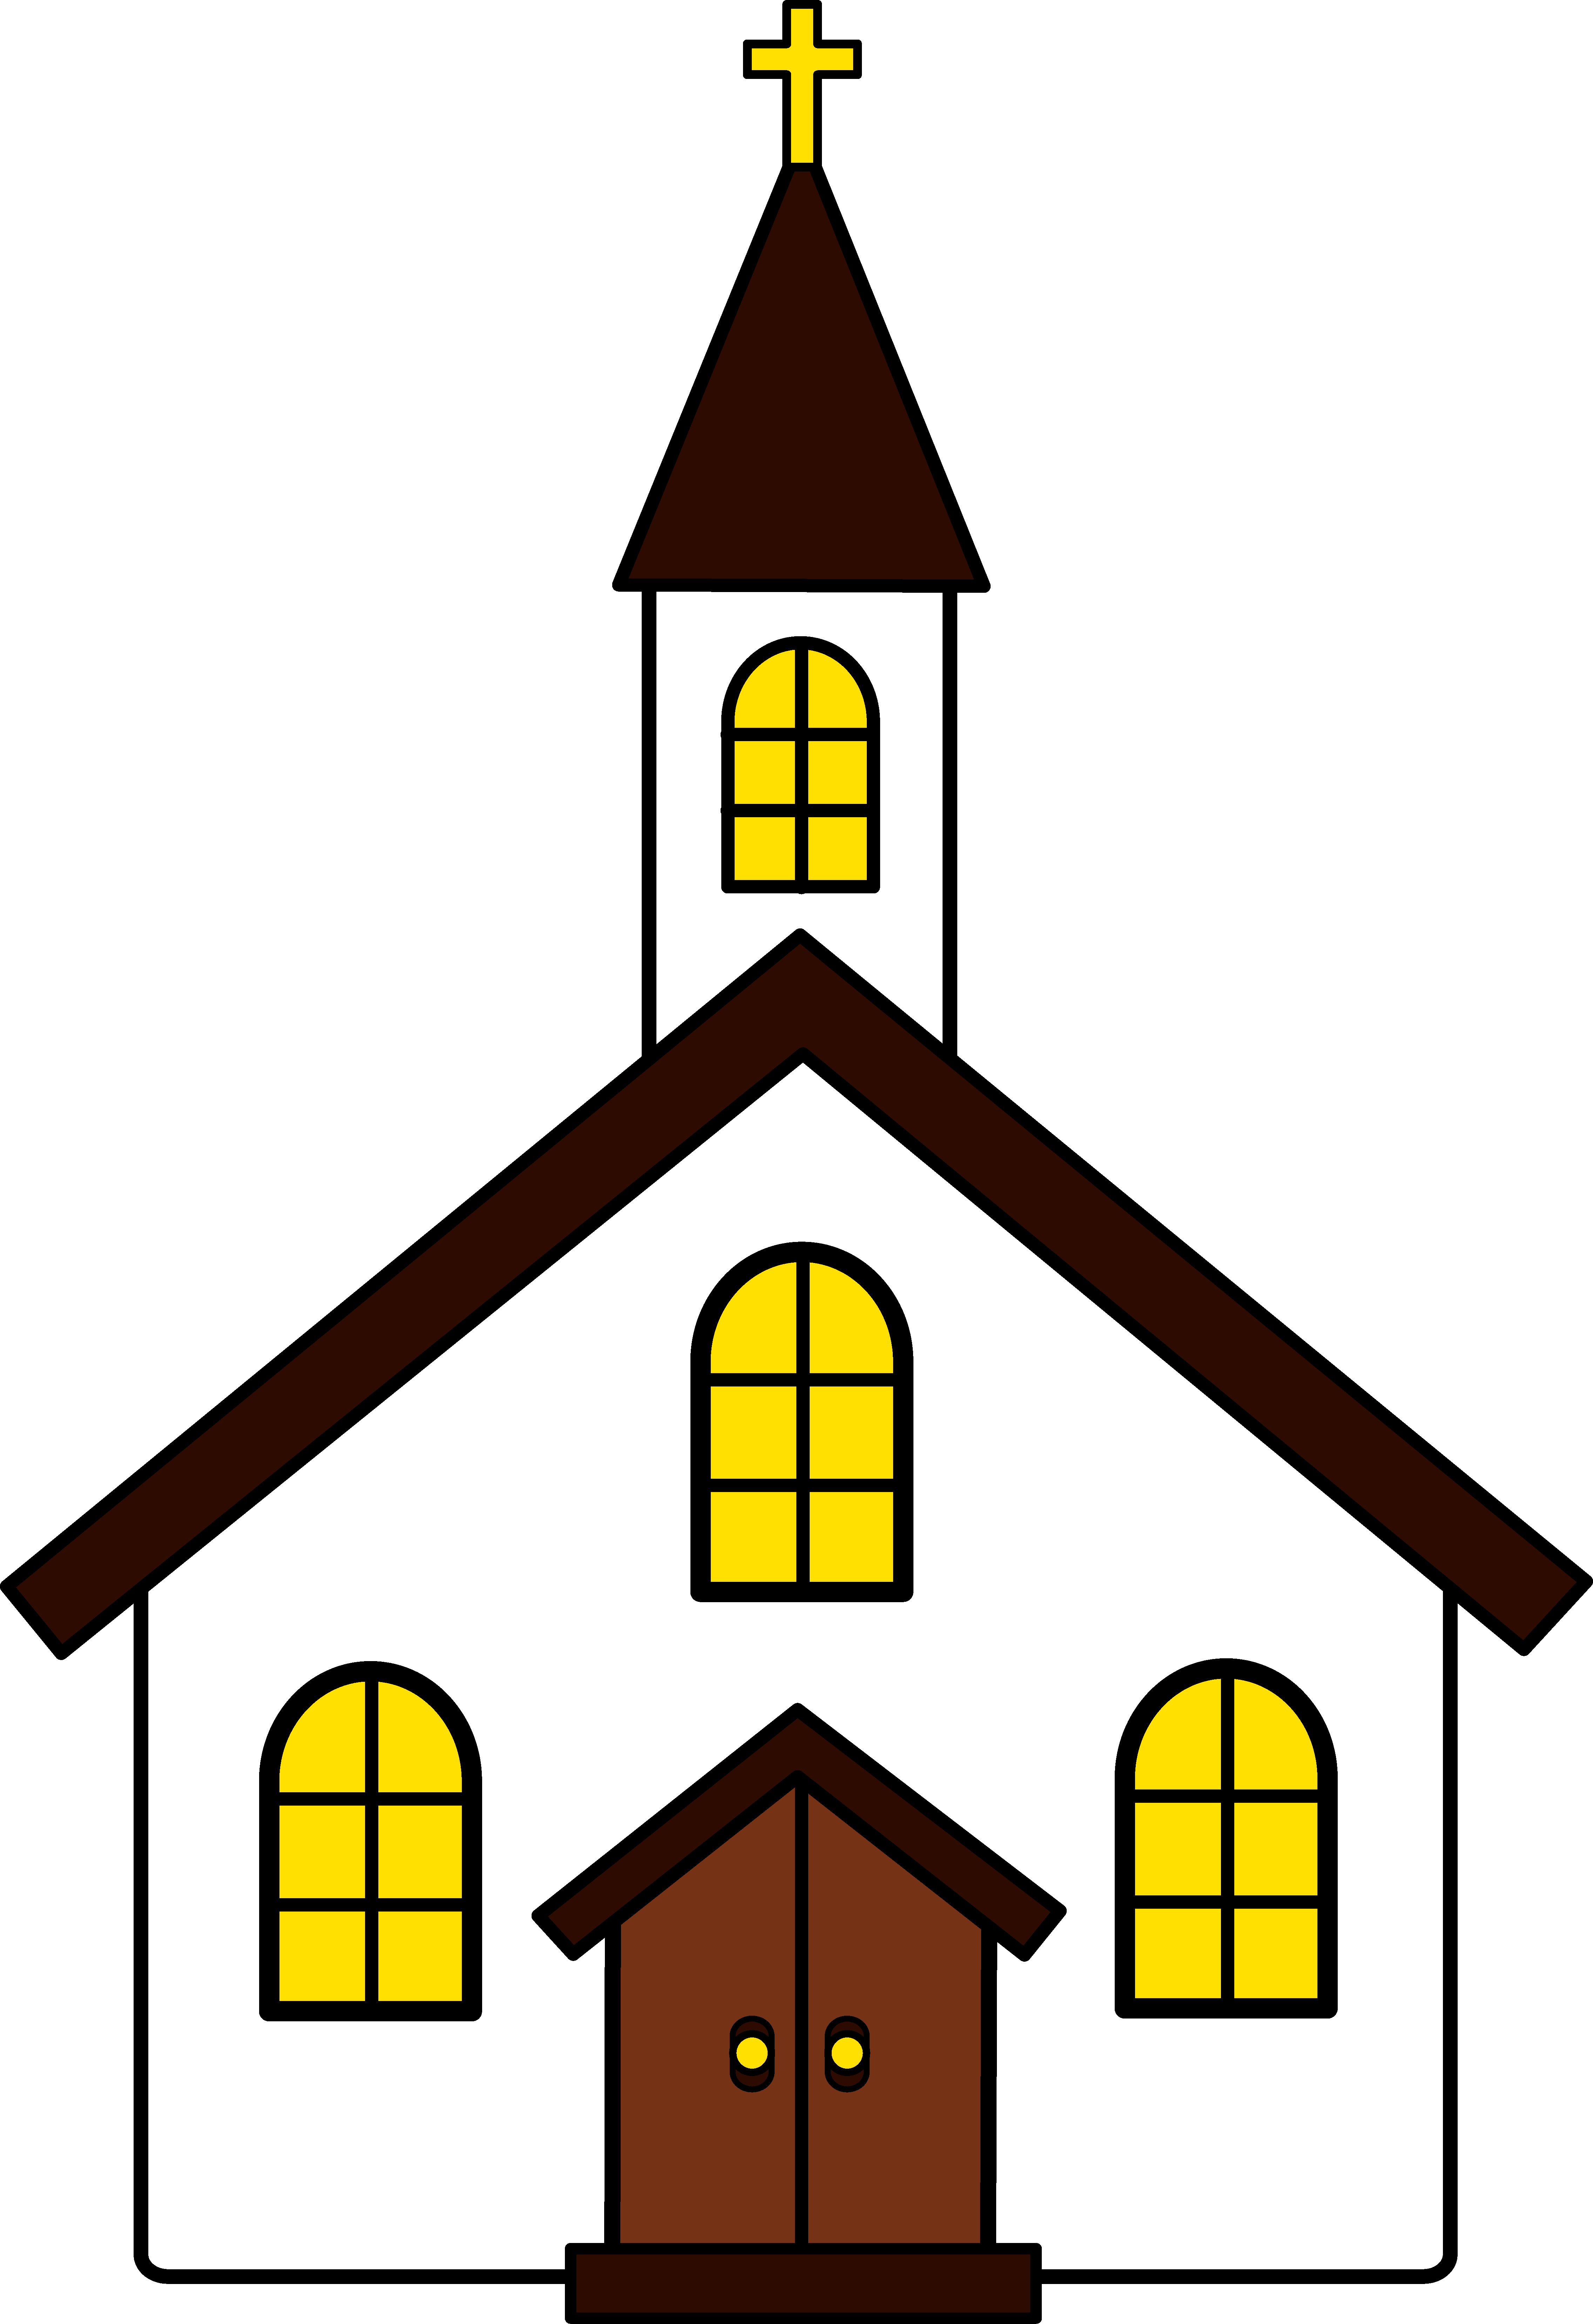 Photo clipart church. Free images download clip